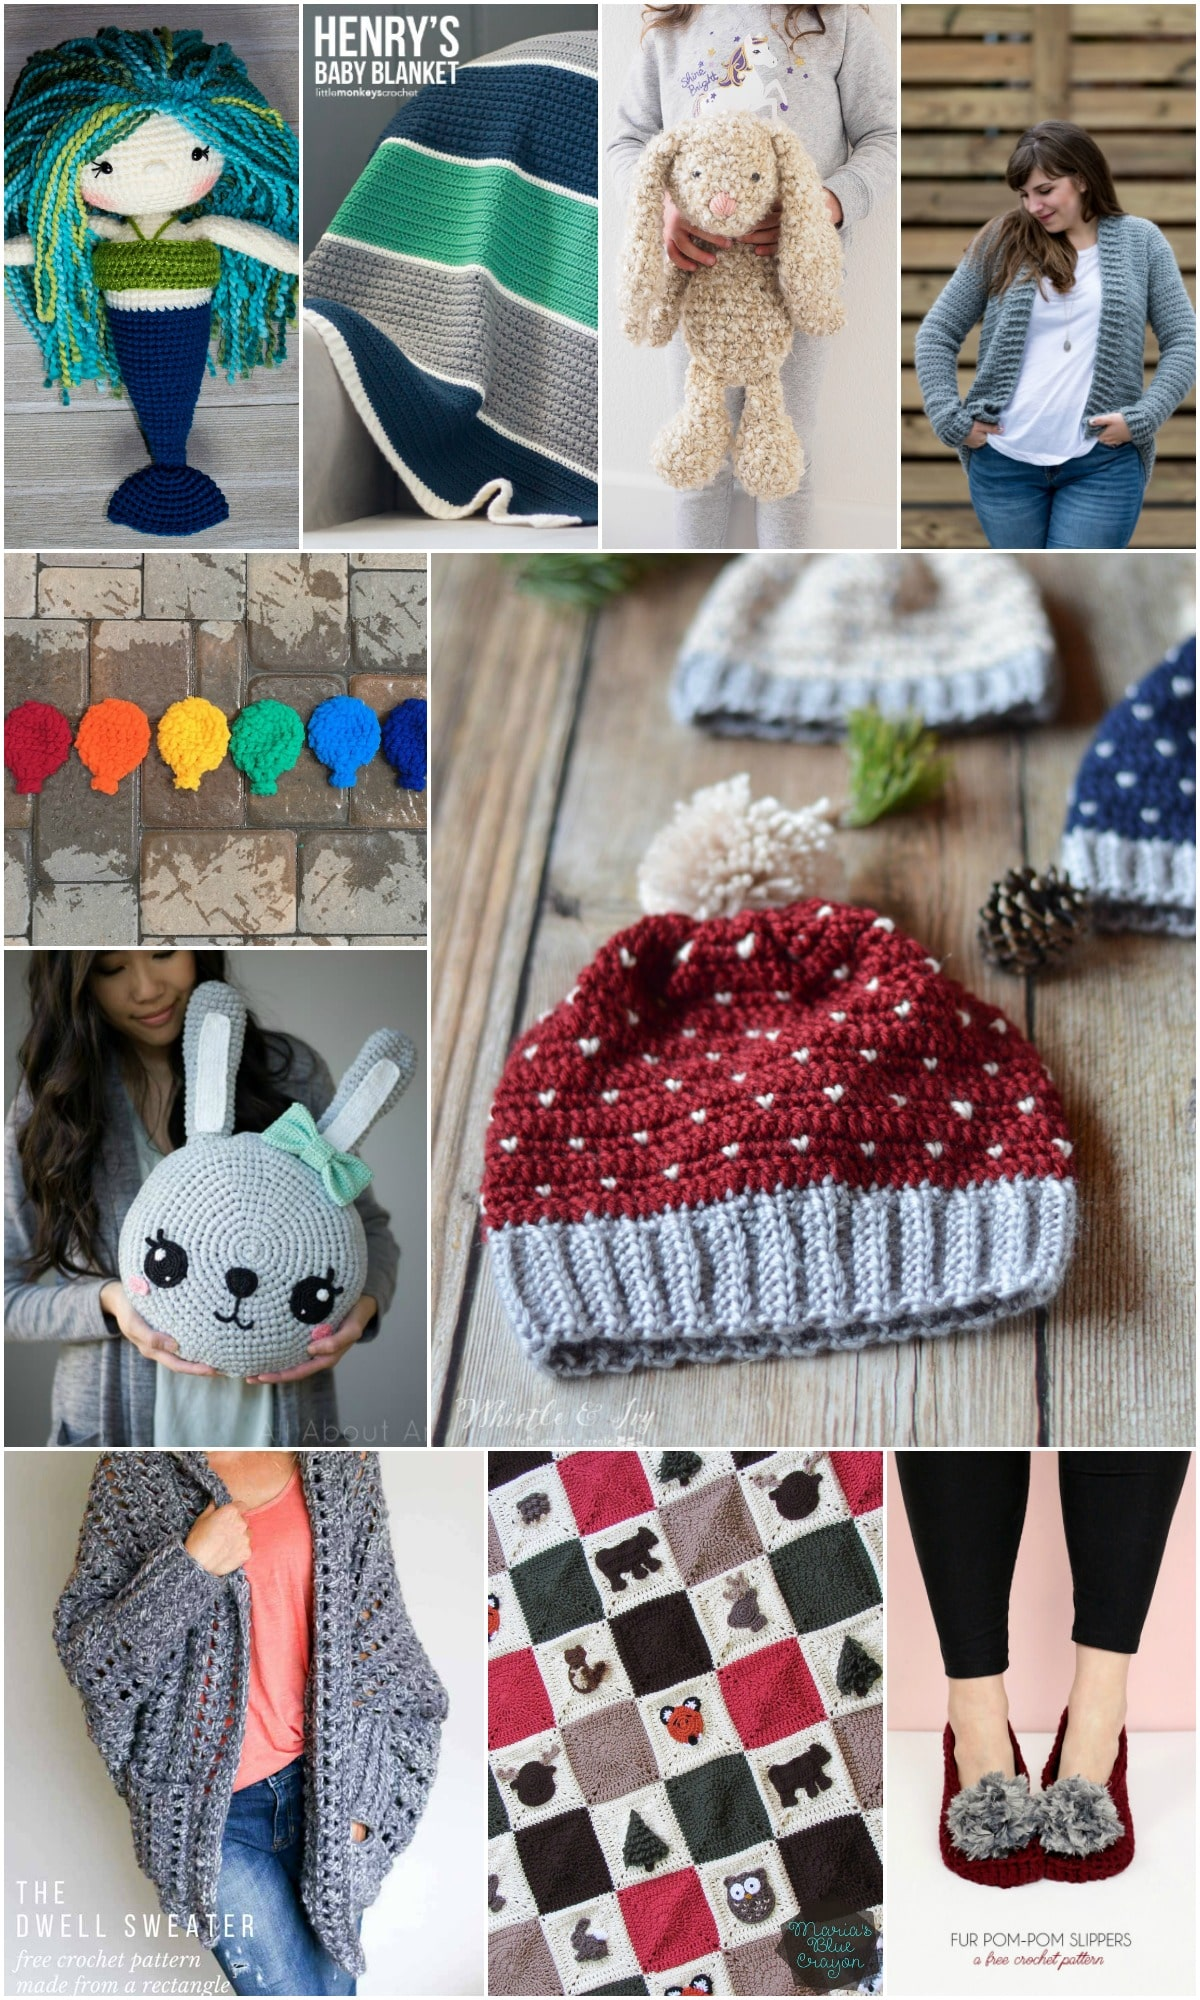 Top FREE Crochet Patterns of 2017 - Get the top 10 patterns from around the web in one place! These are the most popular patterns of the year!